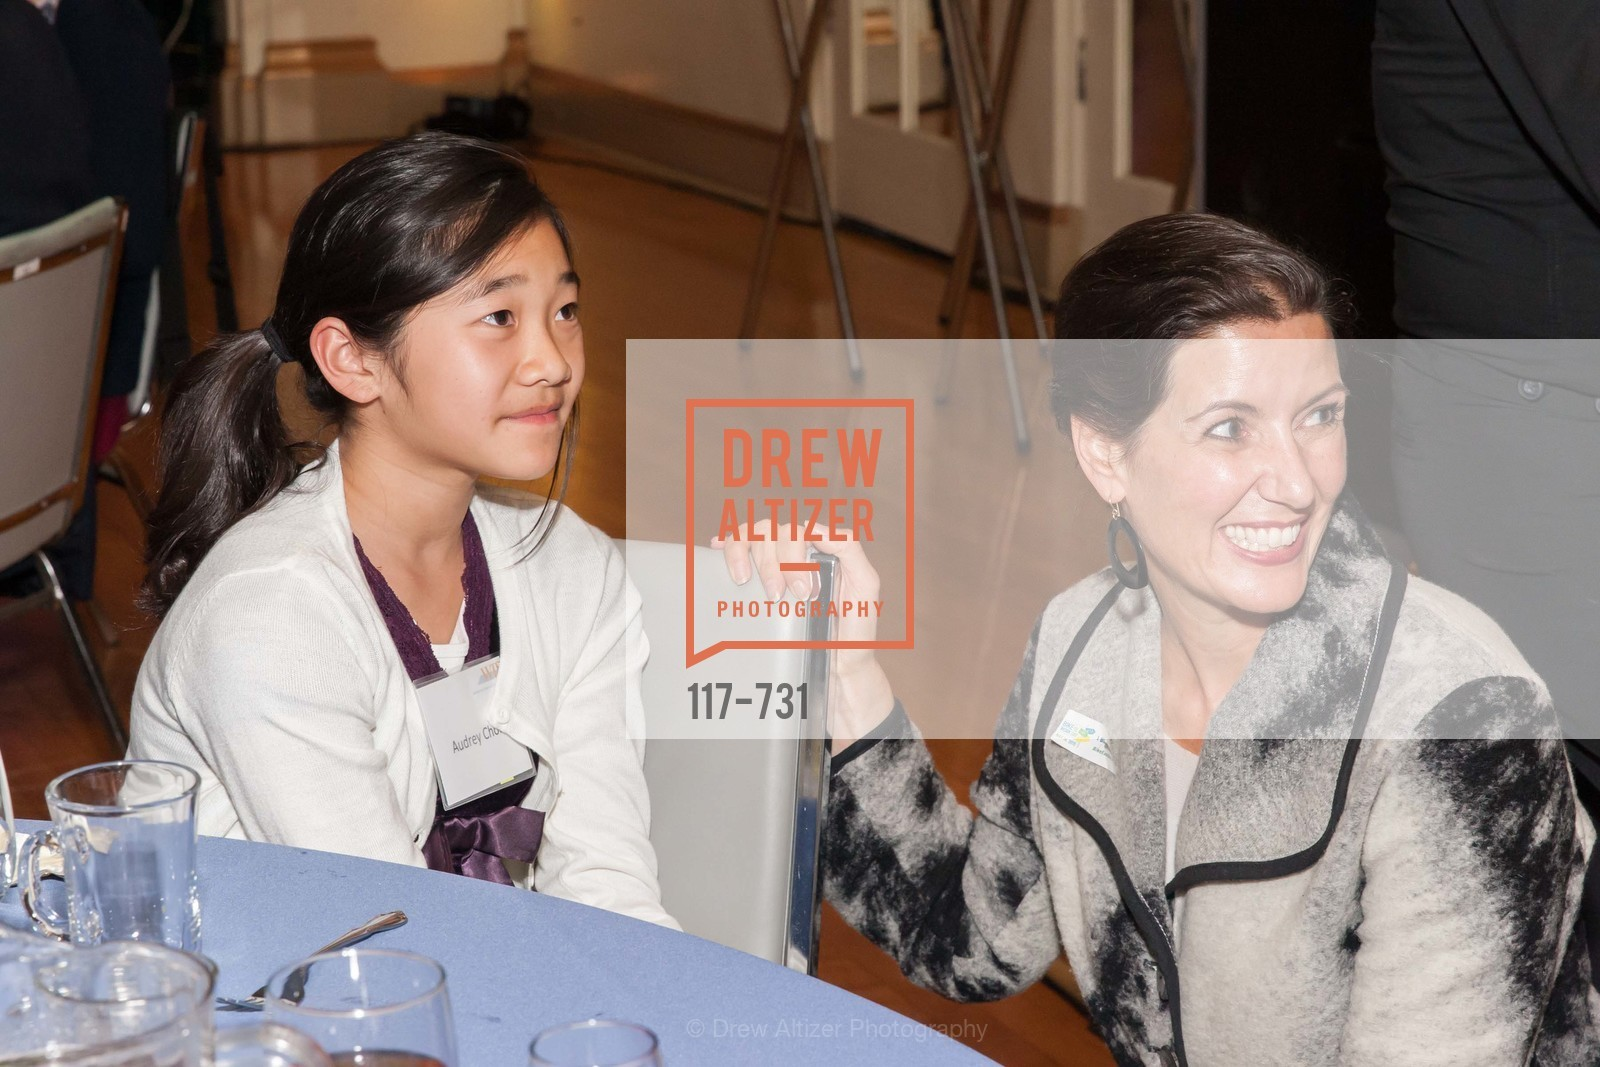 Audrey Choi, Libby Schaaf, WOMEN'S TRANSPORTATION SEMINAR SF Bay Area Chapter Annual Scholarship Awards, US, May 14th, 2015,Drew Altizer, Drew Altizer Photography, full-service agency, private events, San Francisco photographer, photographer california